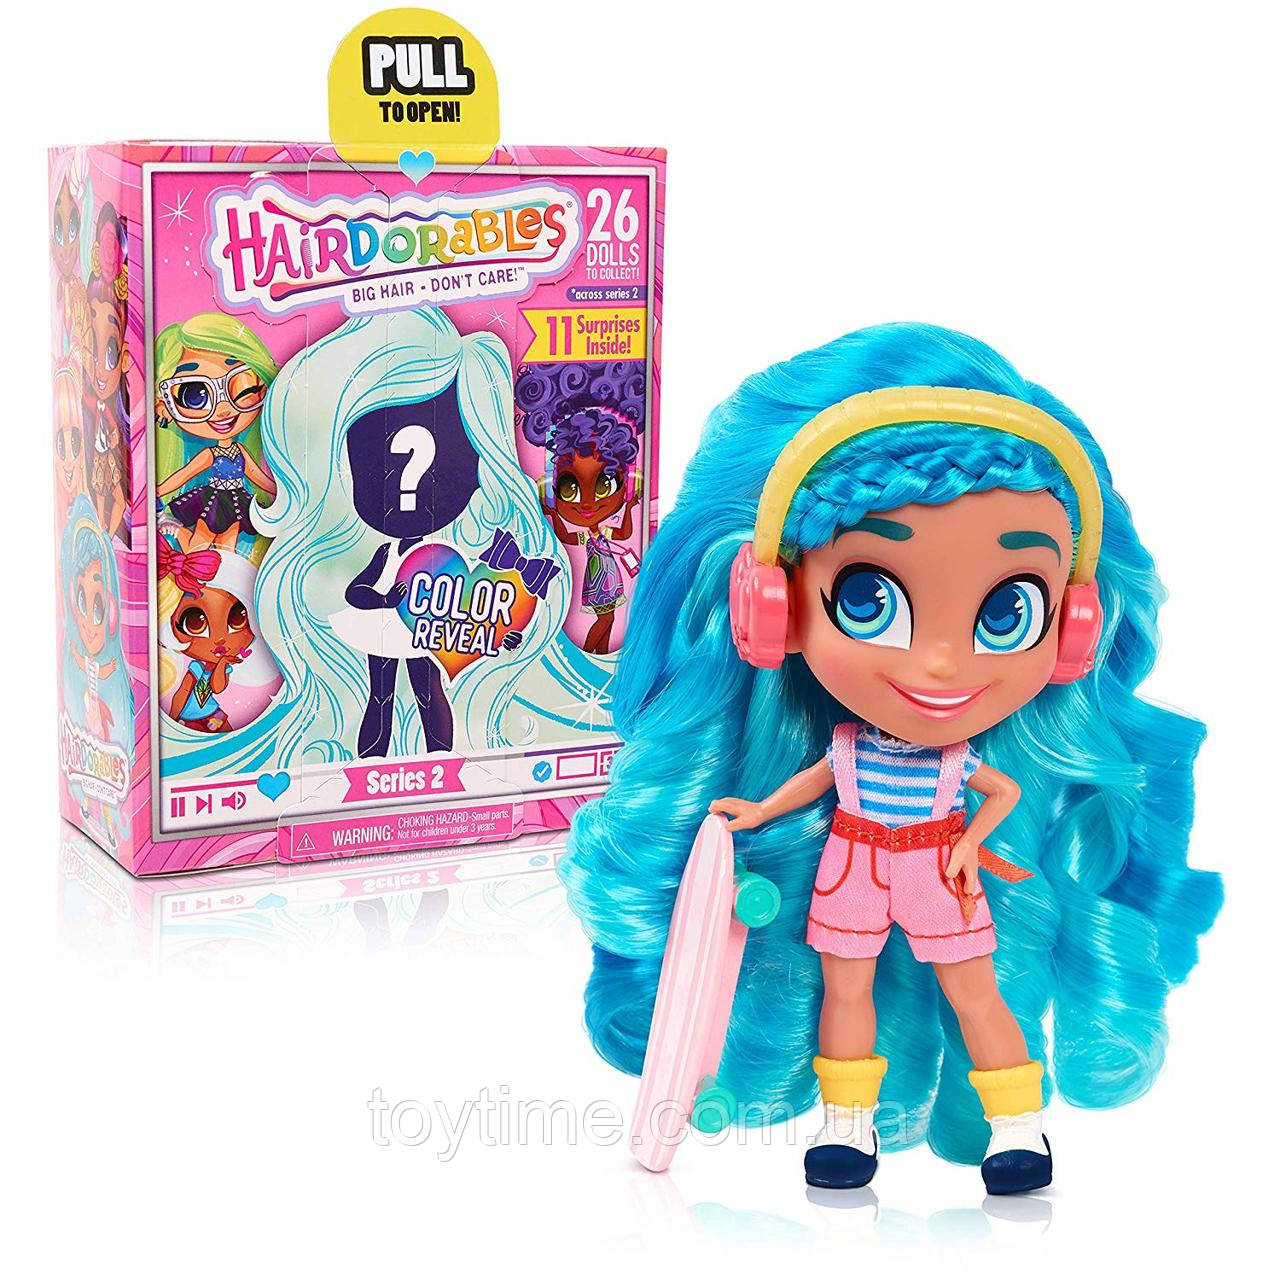 Куколки Хейрдораблес серия 2 / Hairdorables ‐ Collectible Surprise Dolls and Accessories Series 2